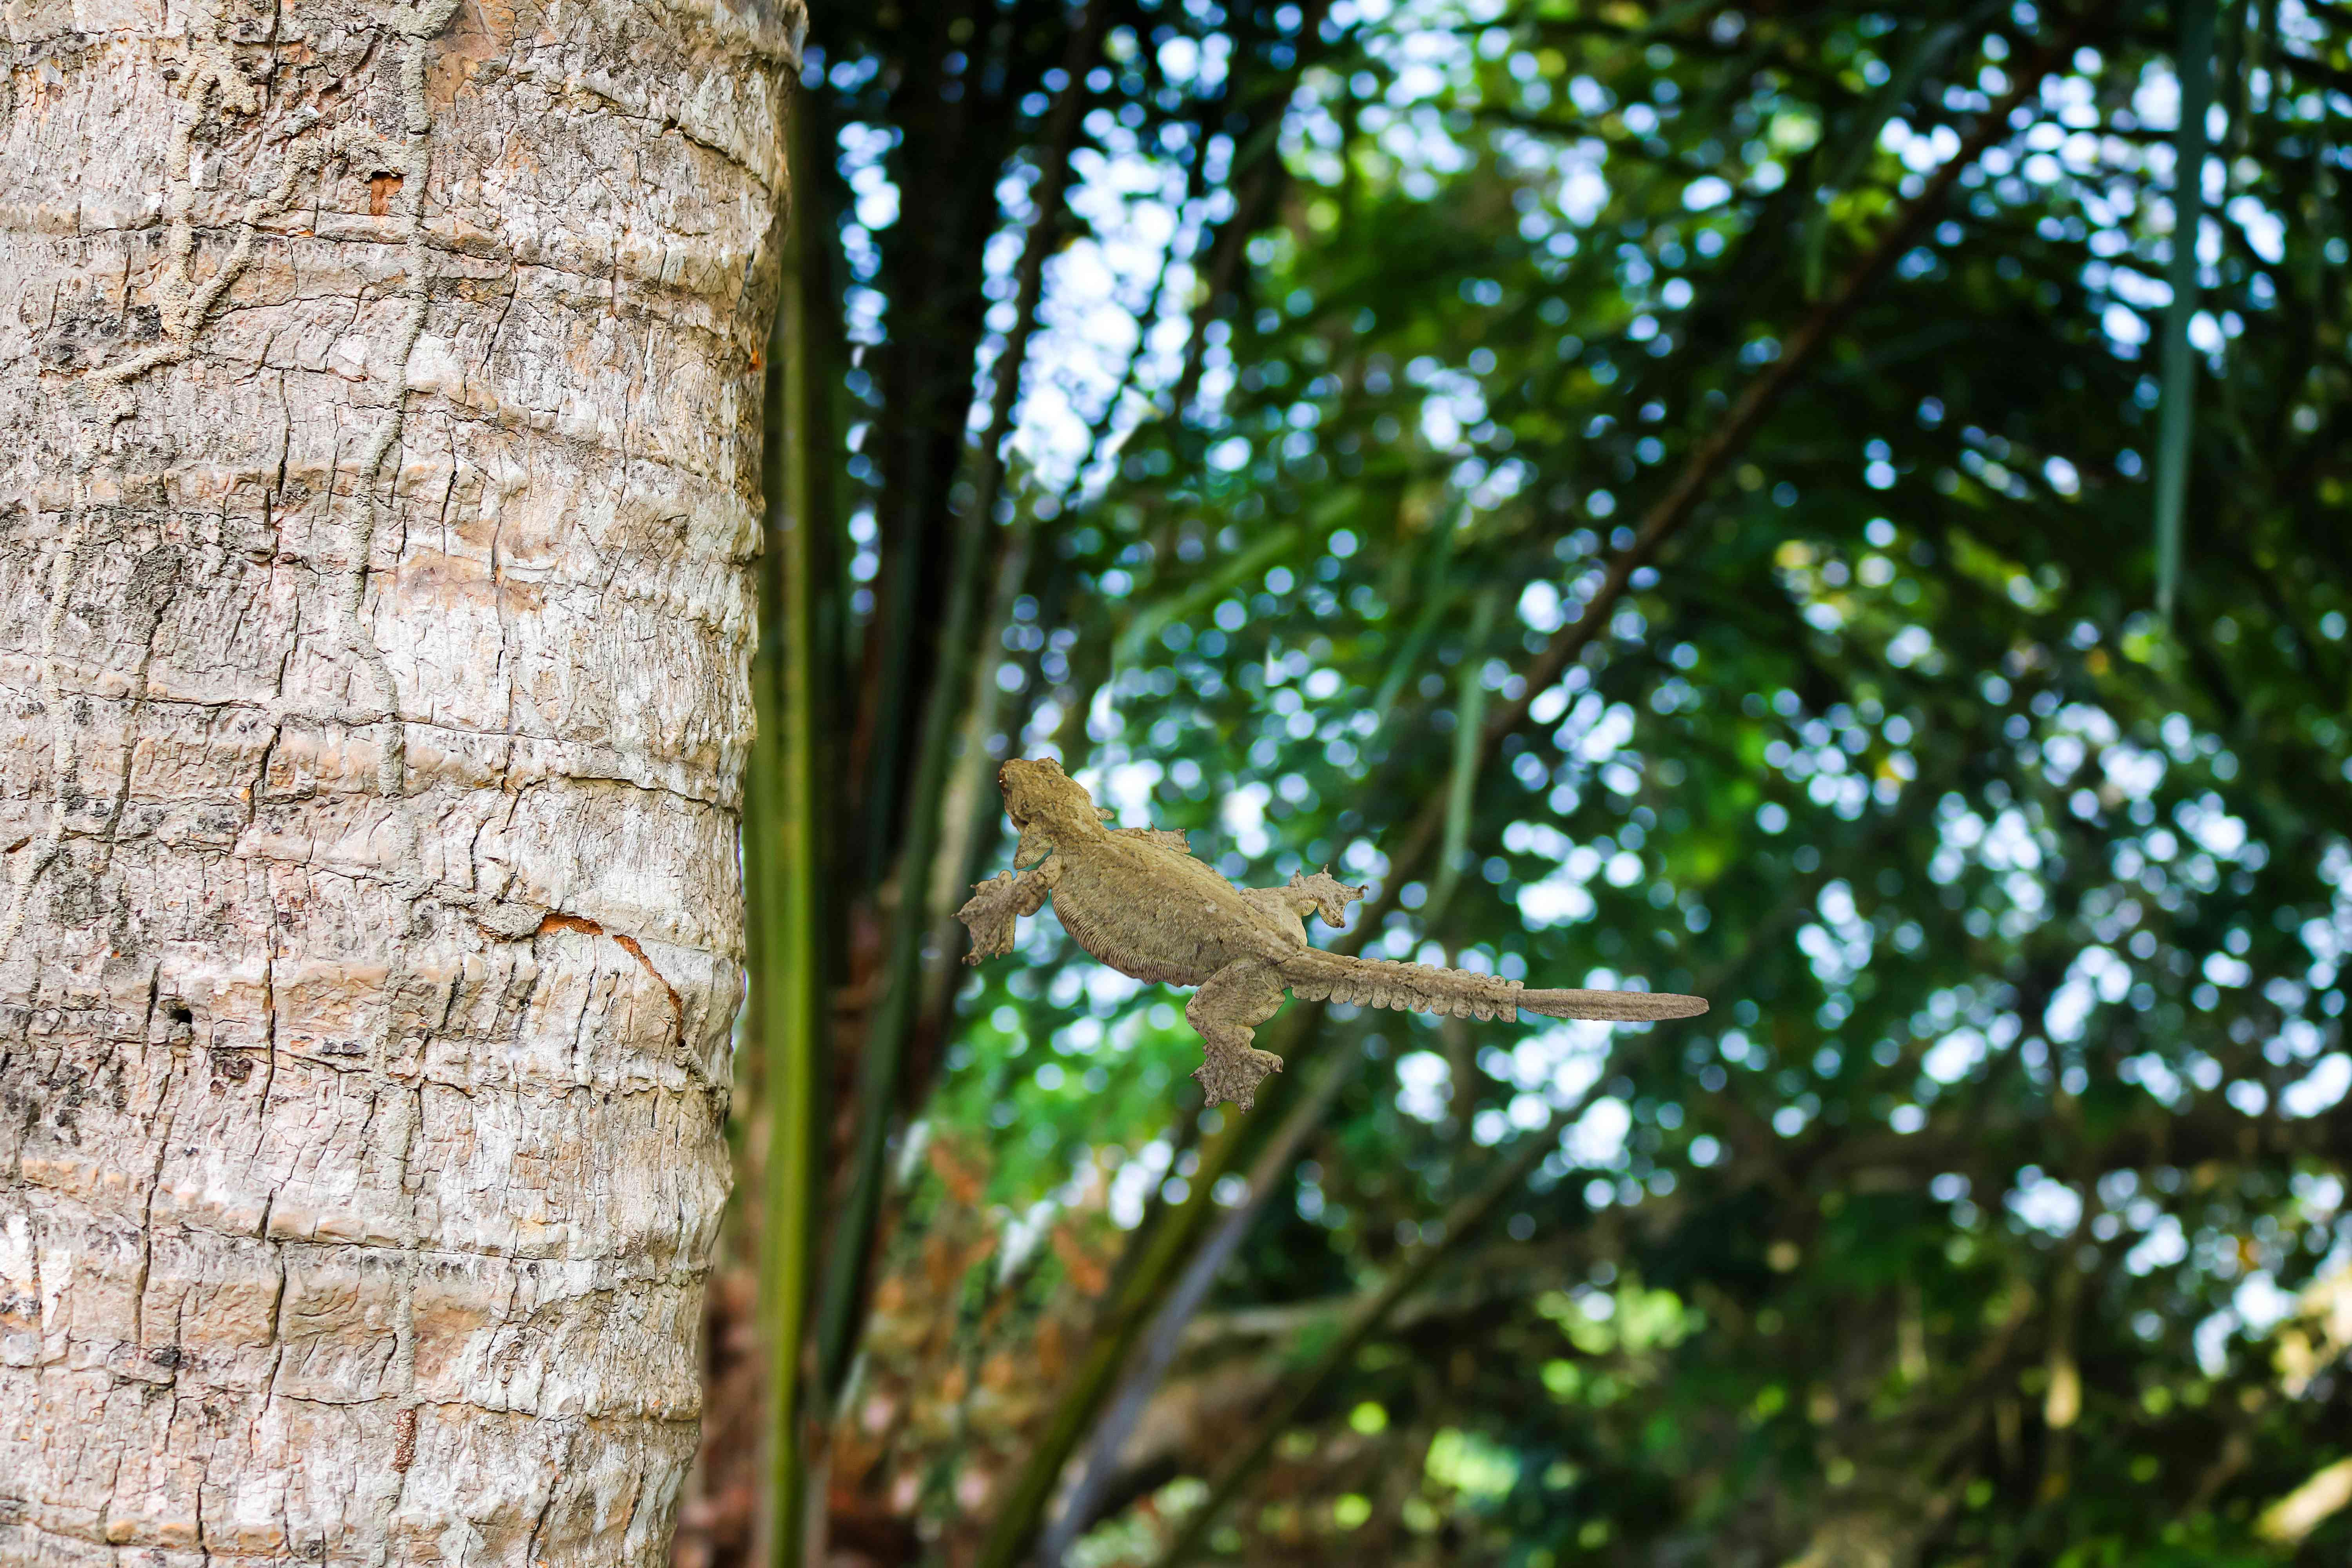 A gliding gecko uses its webbed skin to